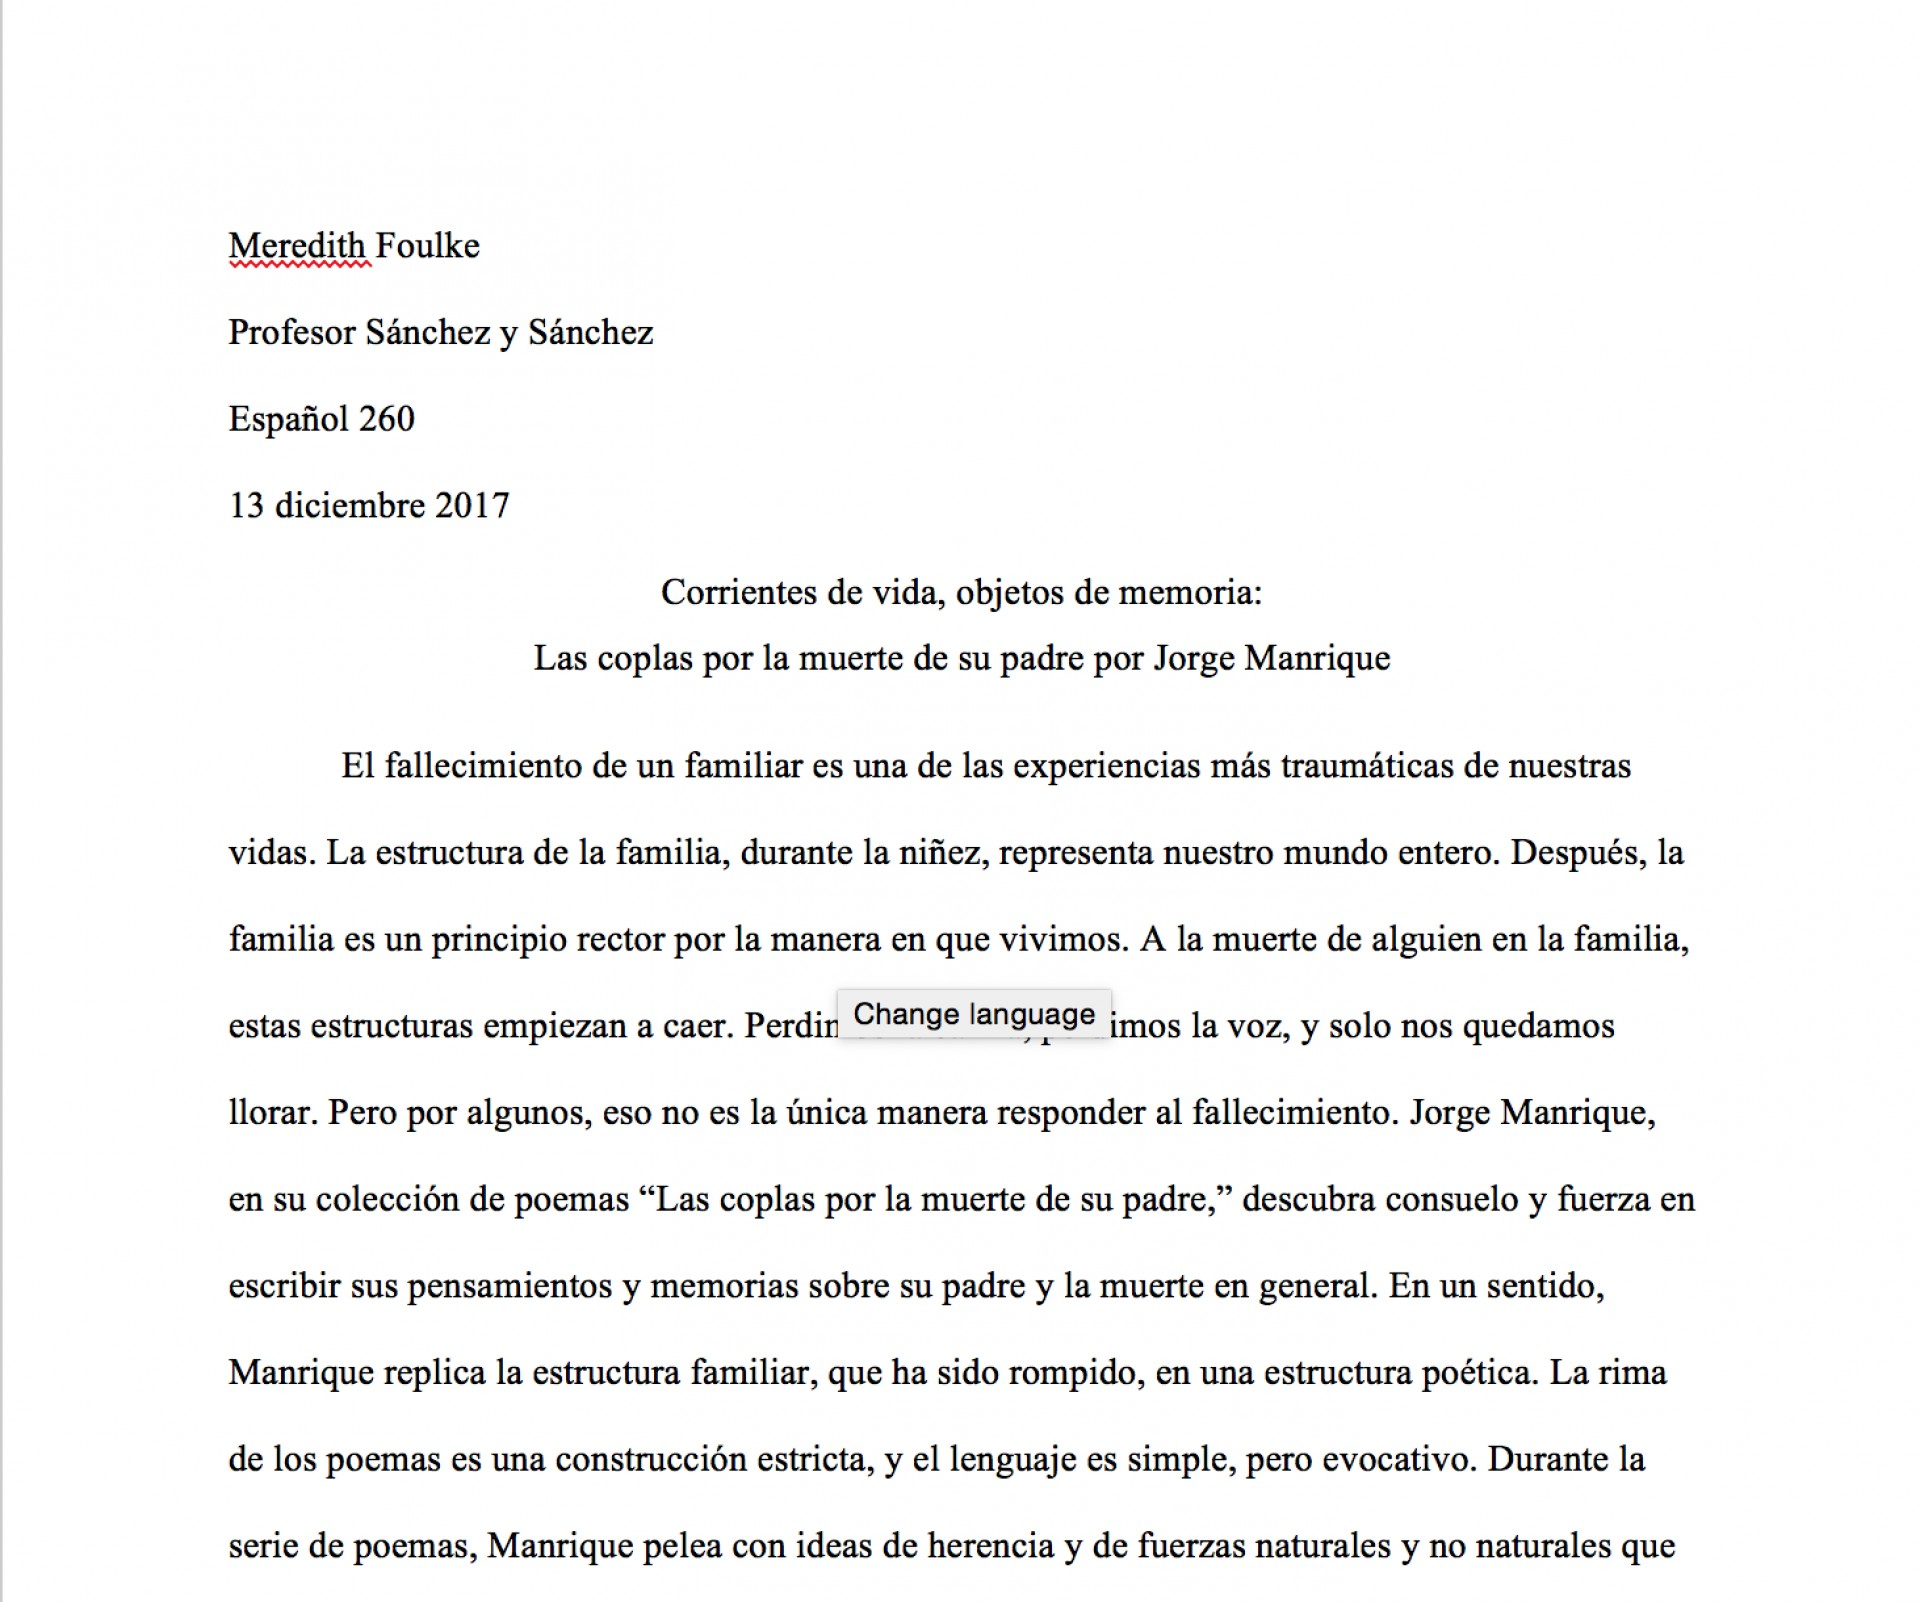 essay significado wordreference